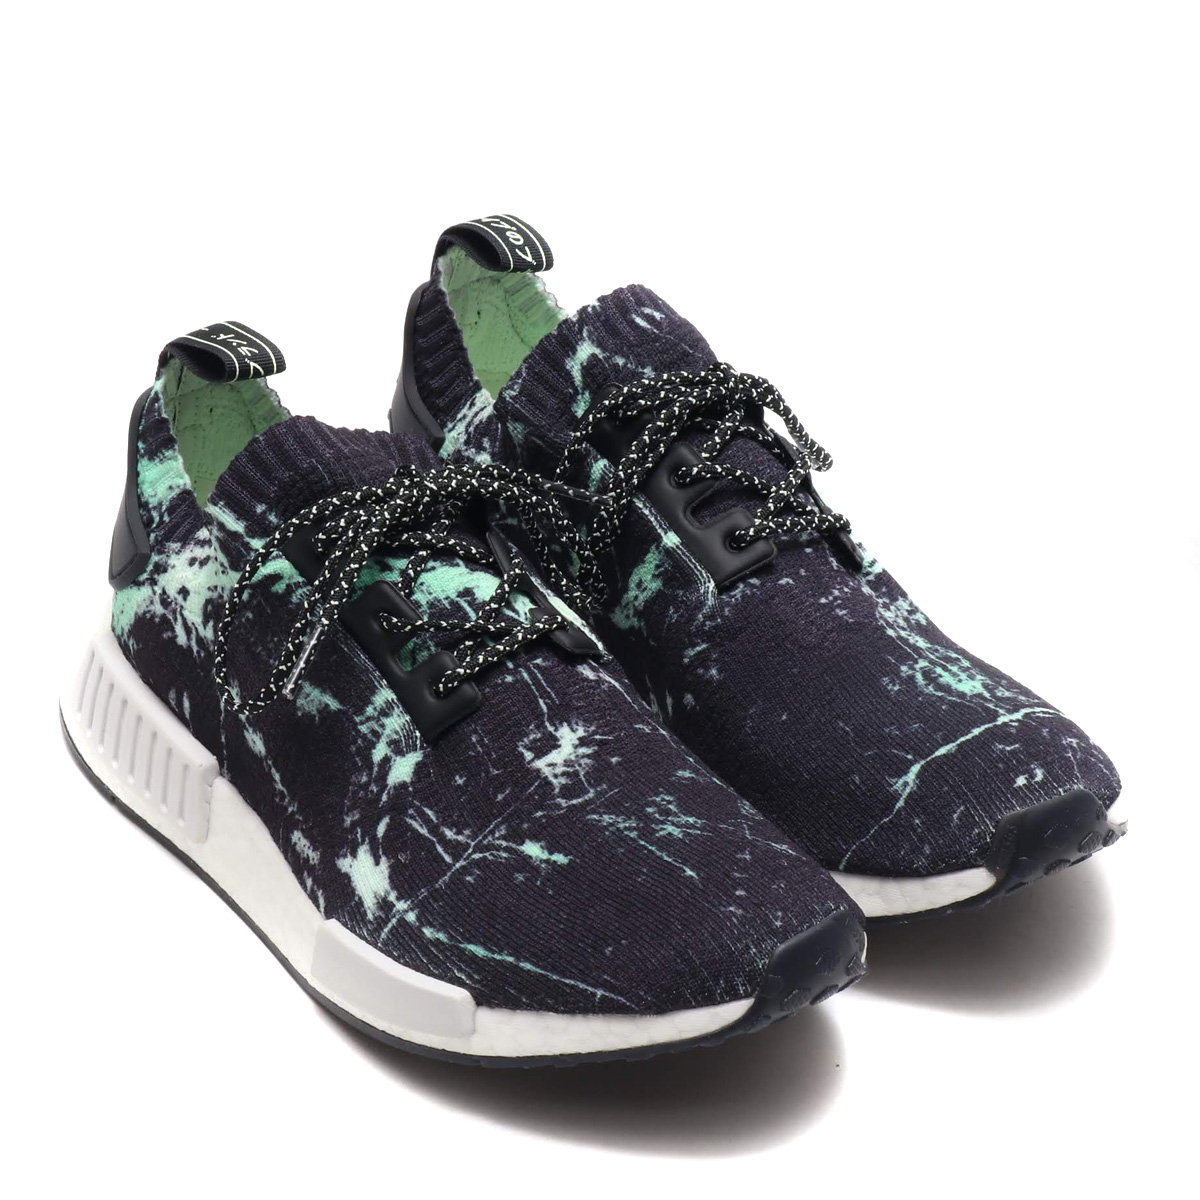 adidas Originals NMD R1 PK (Adidas originals N M D are 1) CORE BLACKRUNNING WHITEAERO GREEN